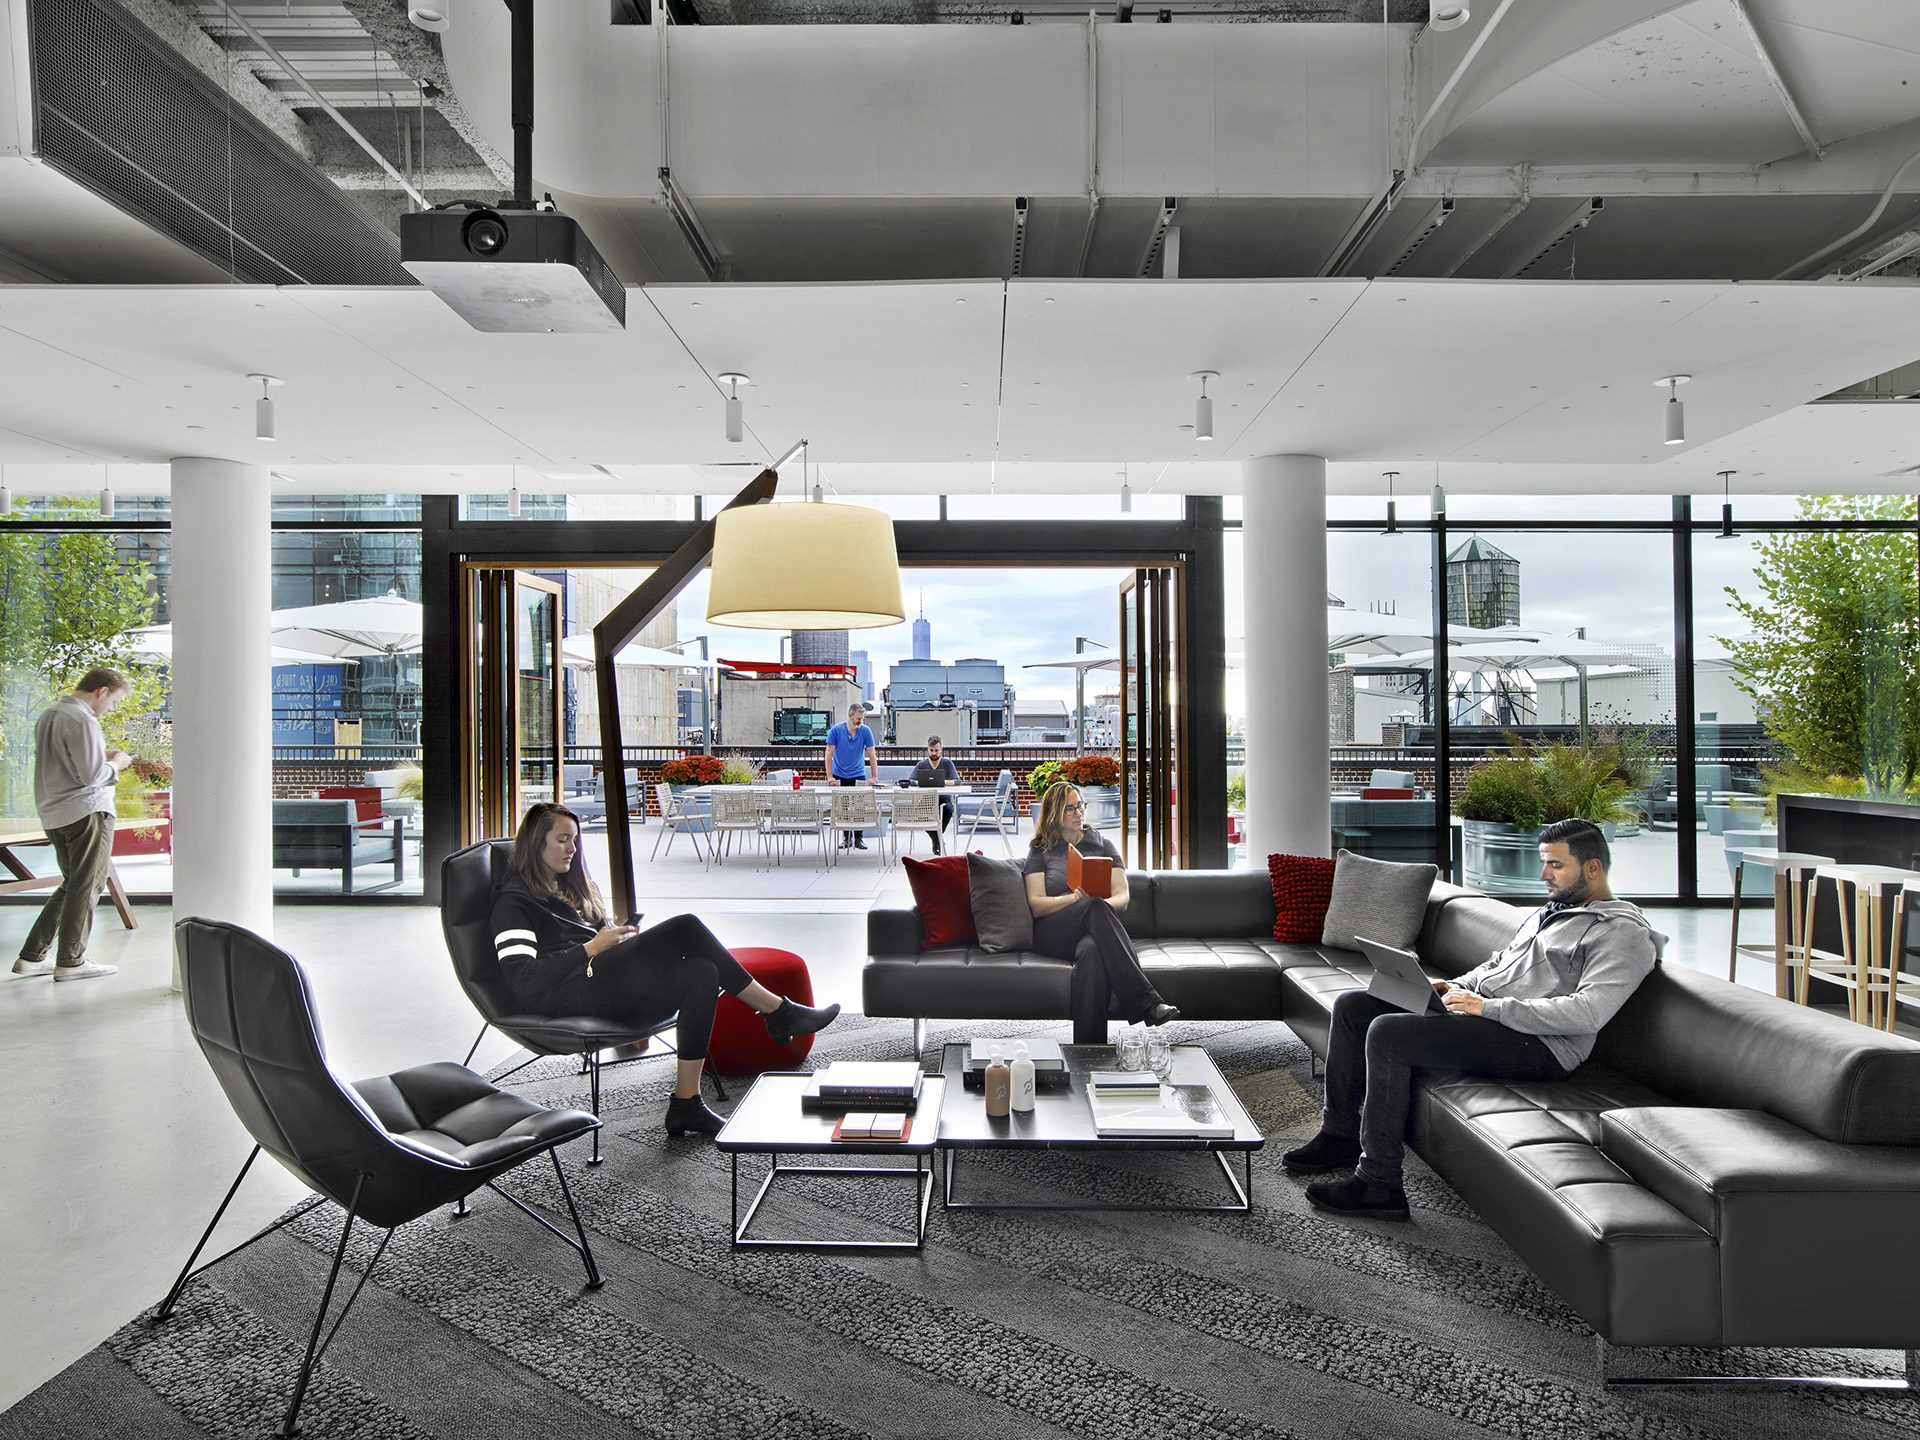 Penthouse lounges at the new Peloton headquarters